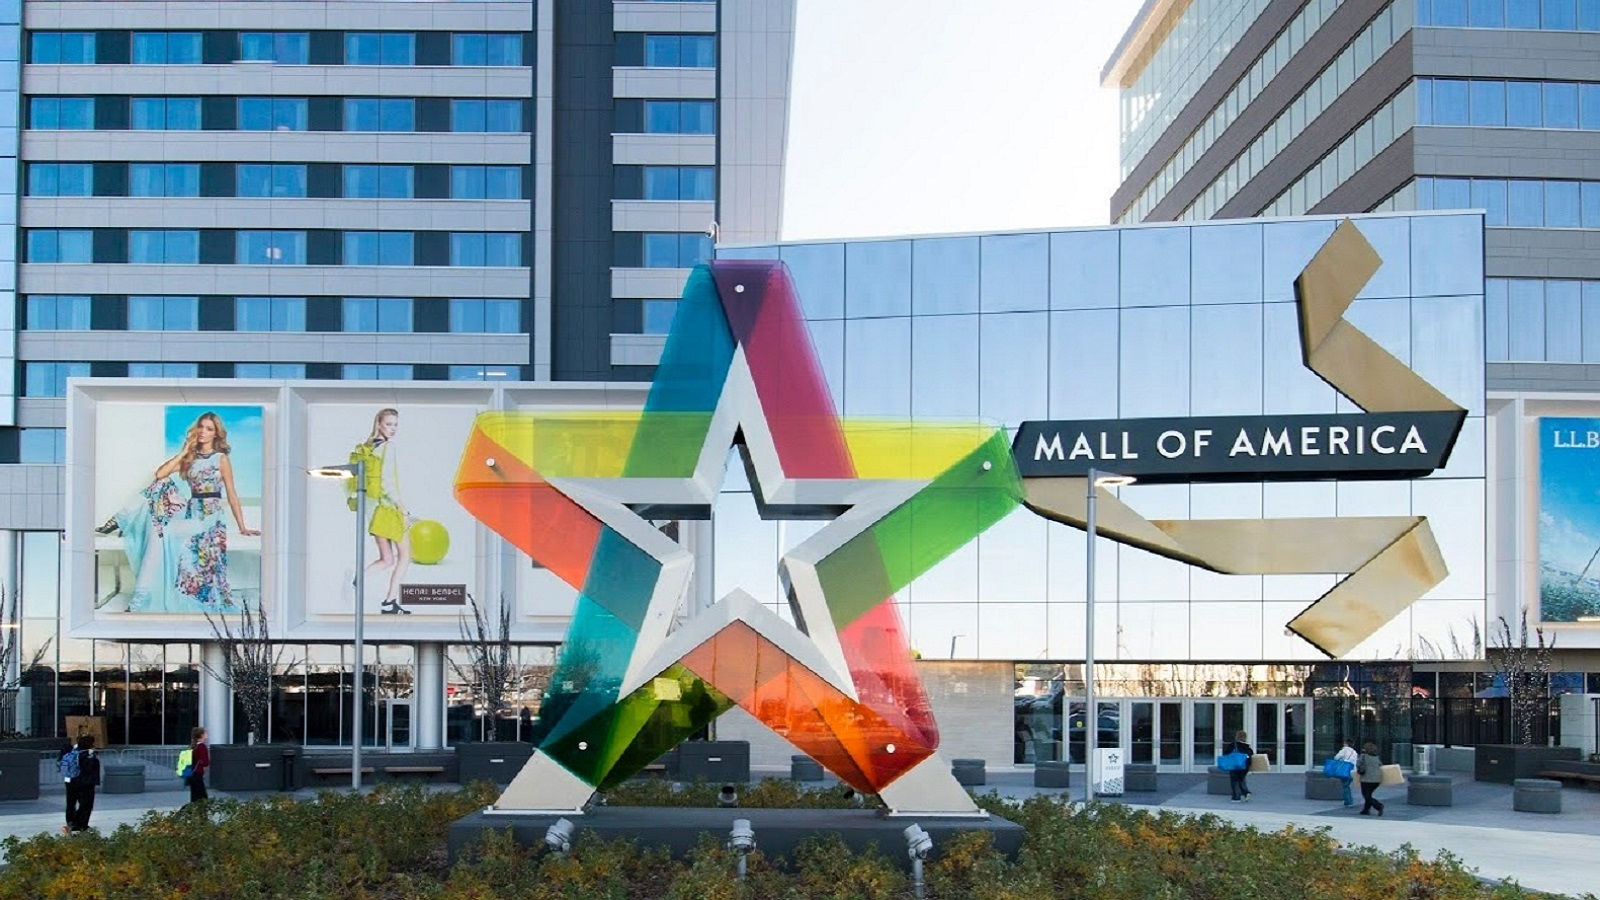 Things to do in Minneapolis includes a trip to the famous Mall of America.